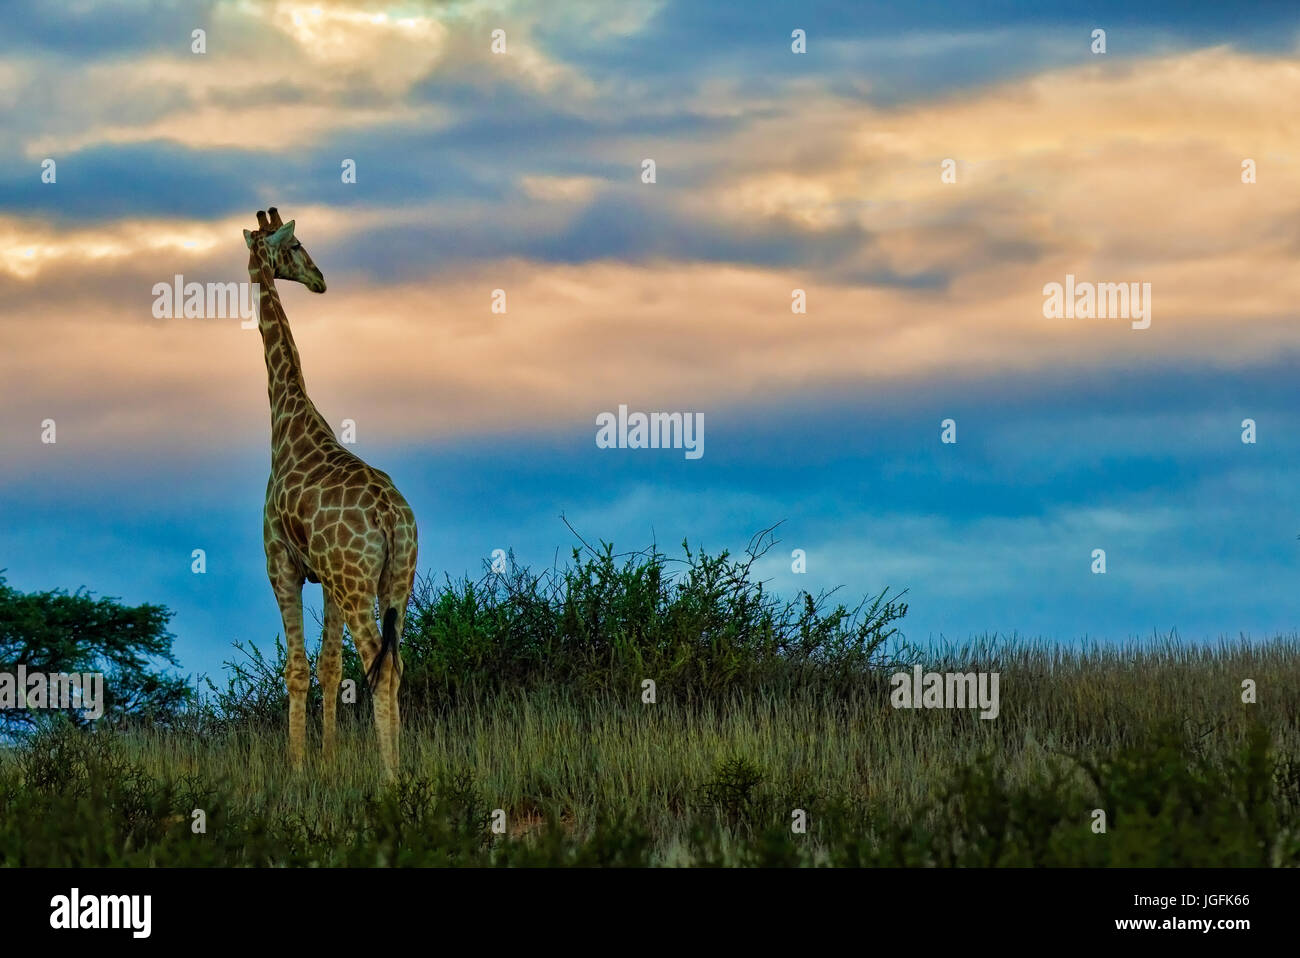 Giraffe ,Giraffa camelopardalis, is the tallest animal and the biggest ruminant. Seen here at sunset very alert - Stock Image